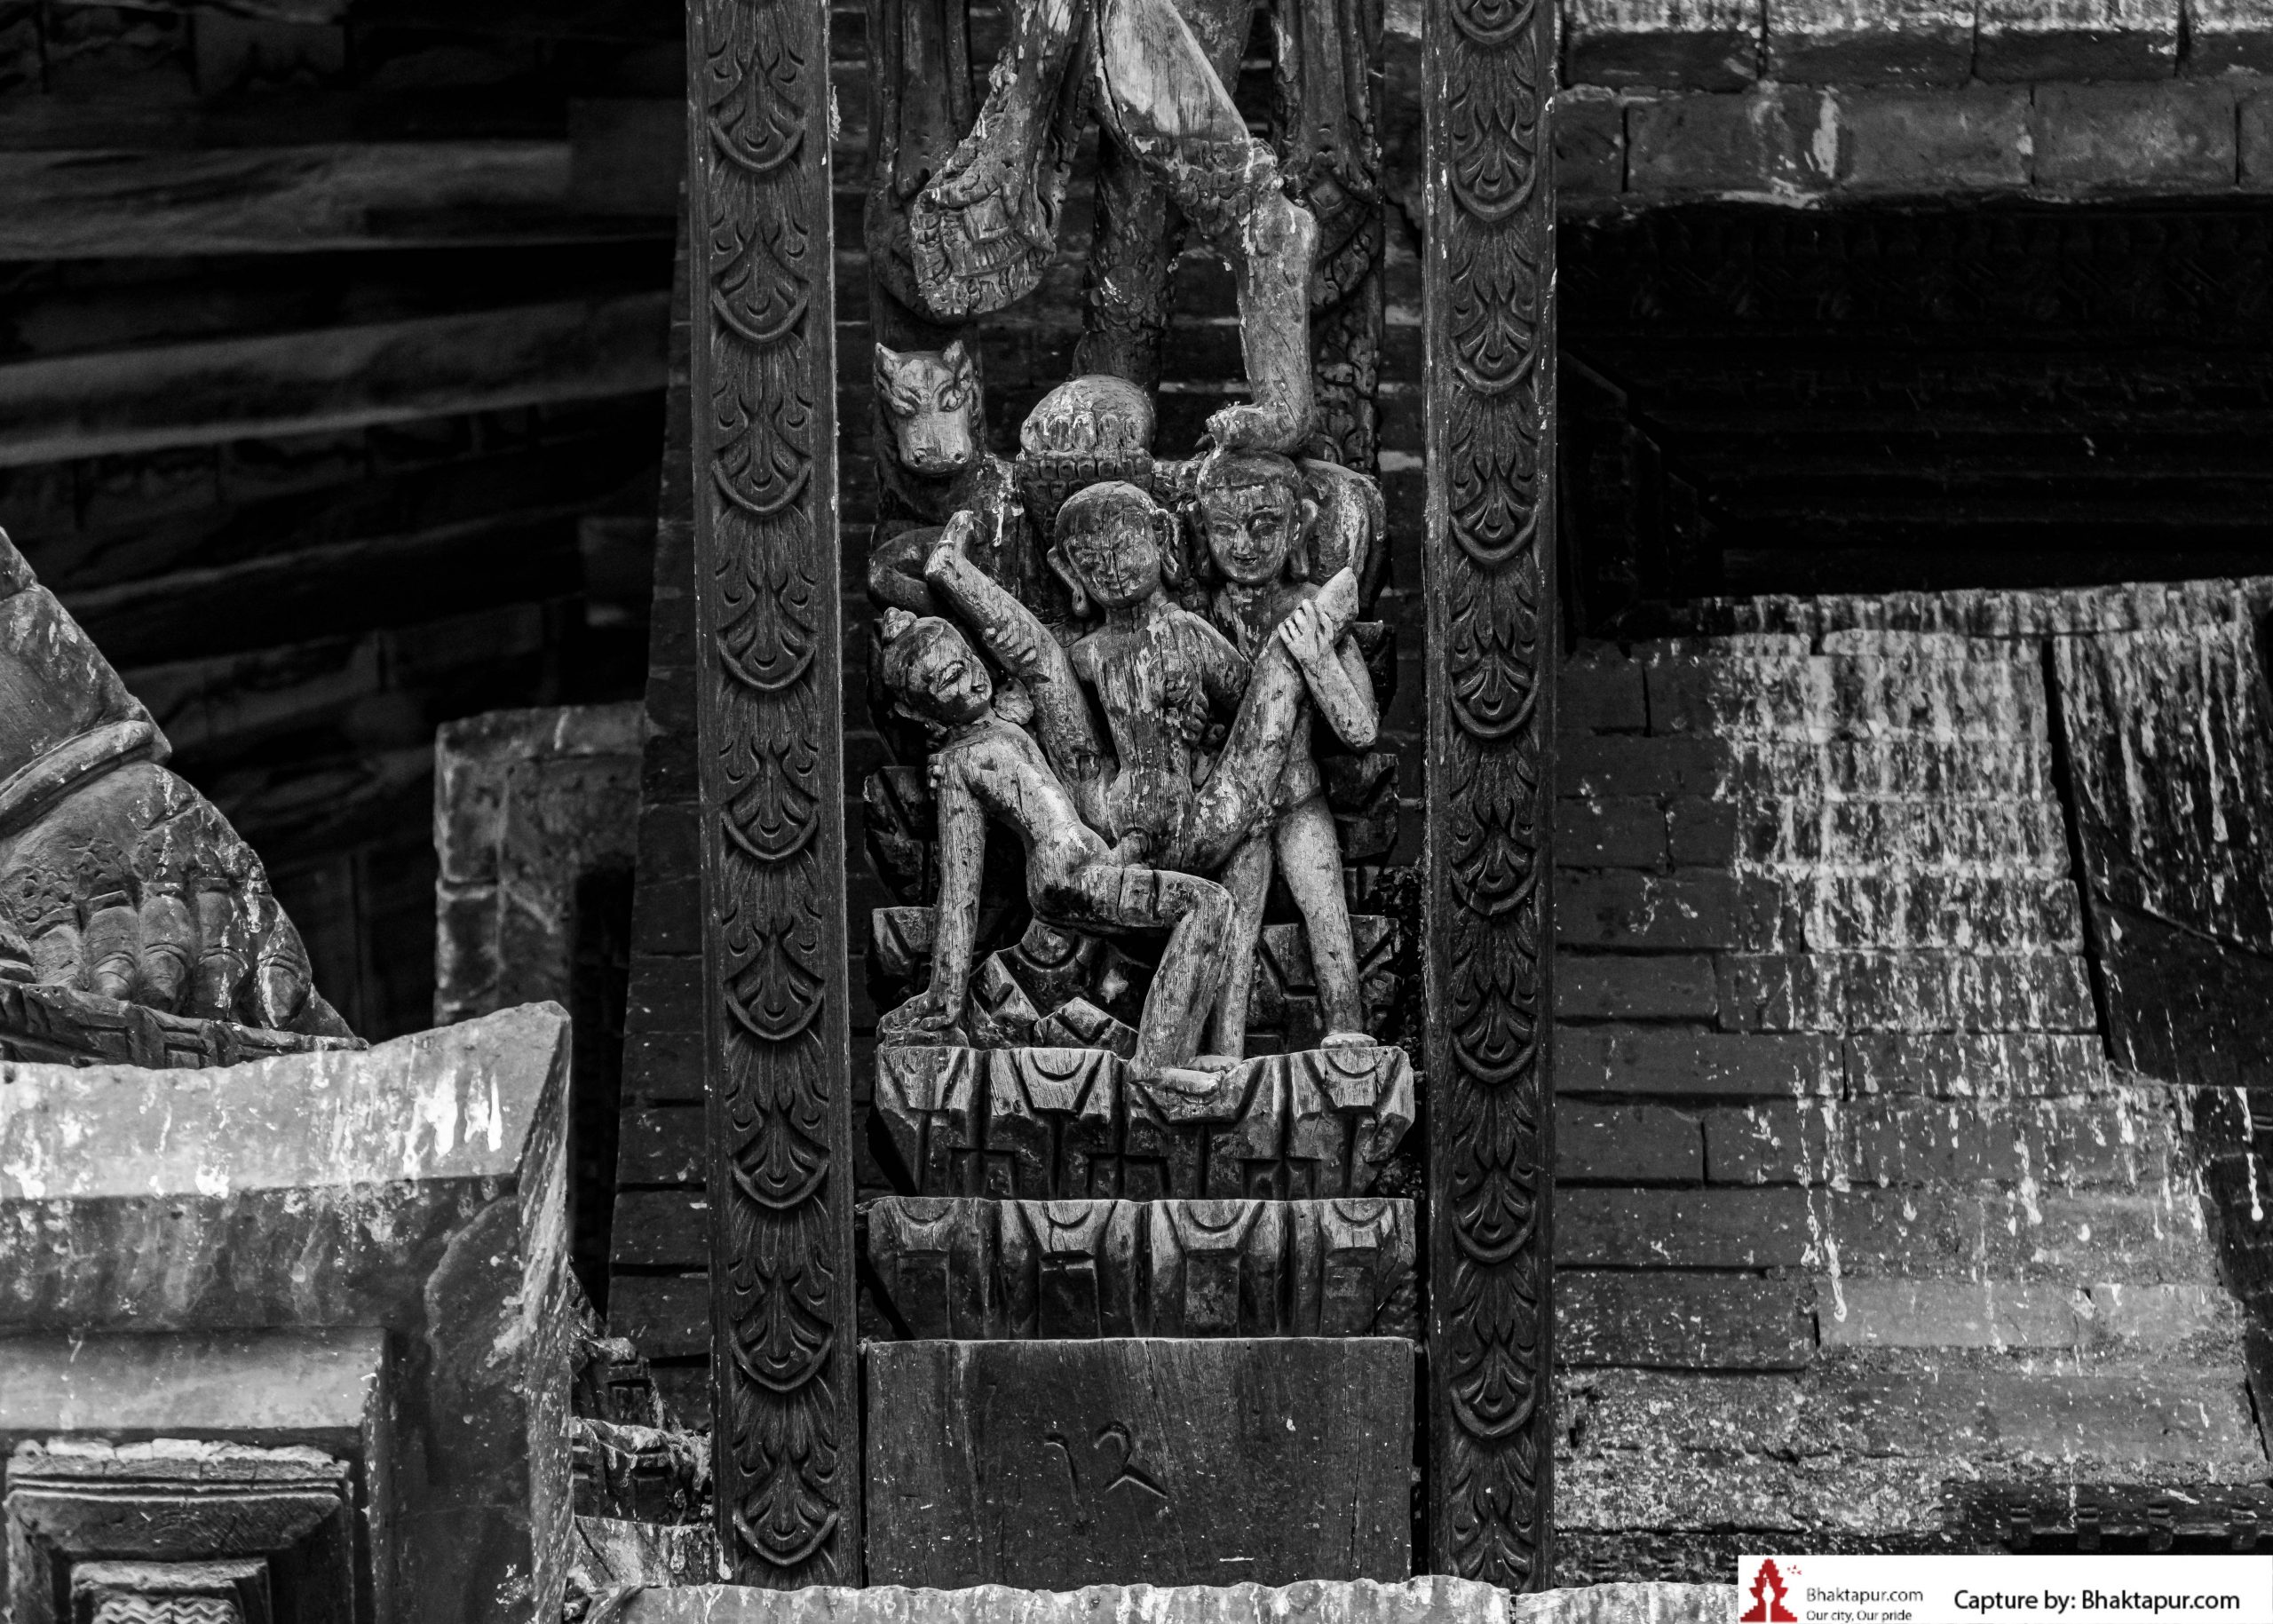 https://www.bhaktapur.com/wp-content/uploads/2021/08/erotic-carving-87-of-137-scaled.jpg